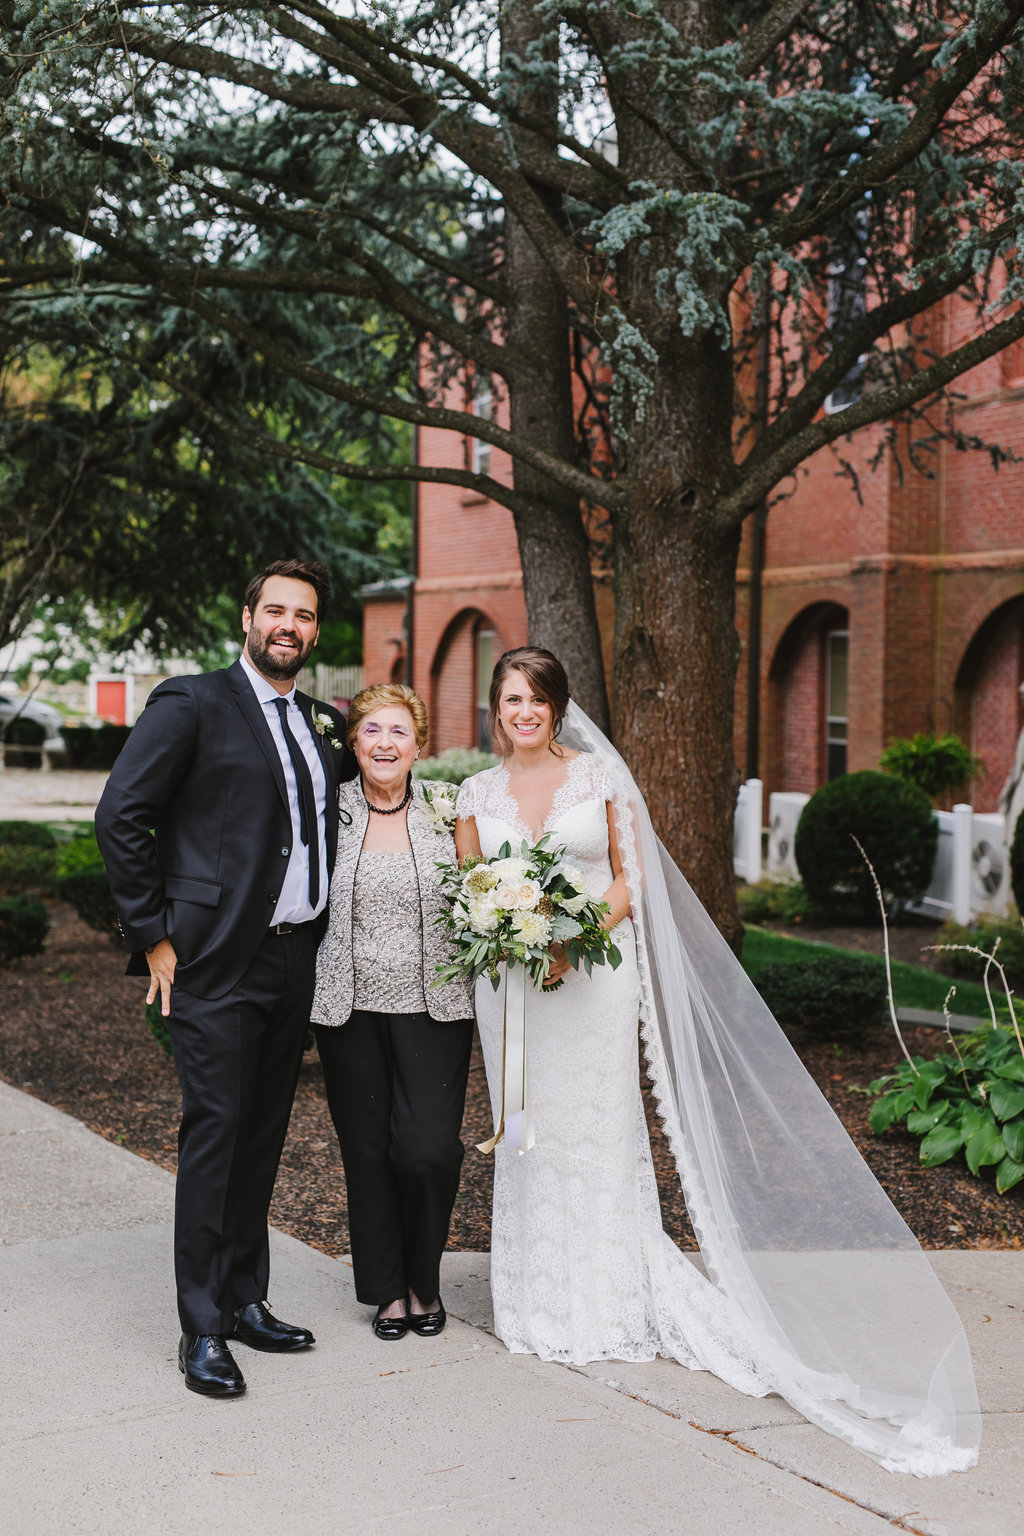 MaryBeth+EthanWedding-EmilyTebbettsPhotography-295.jpg